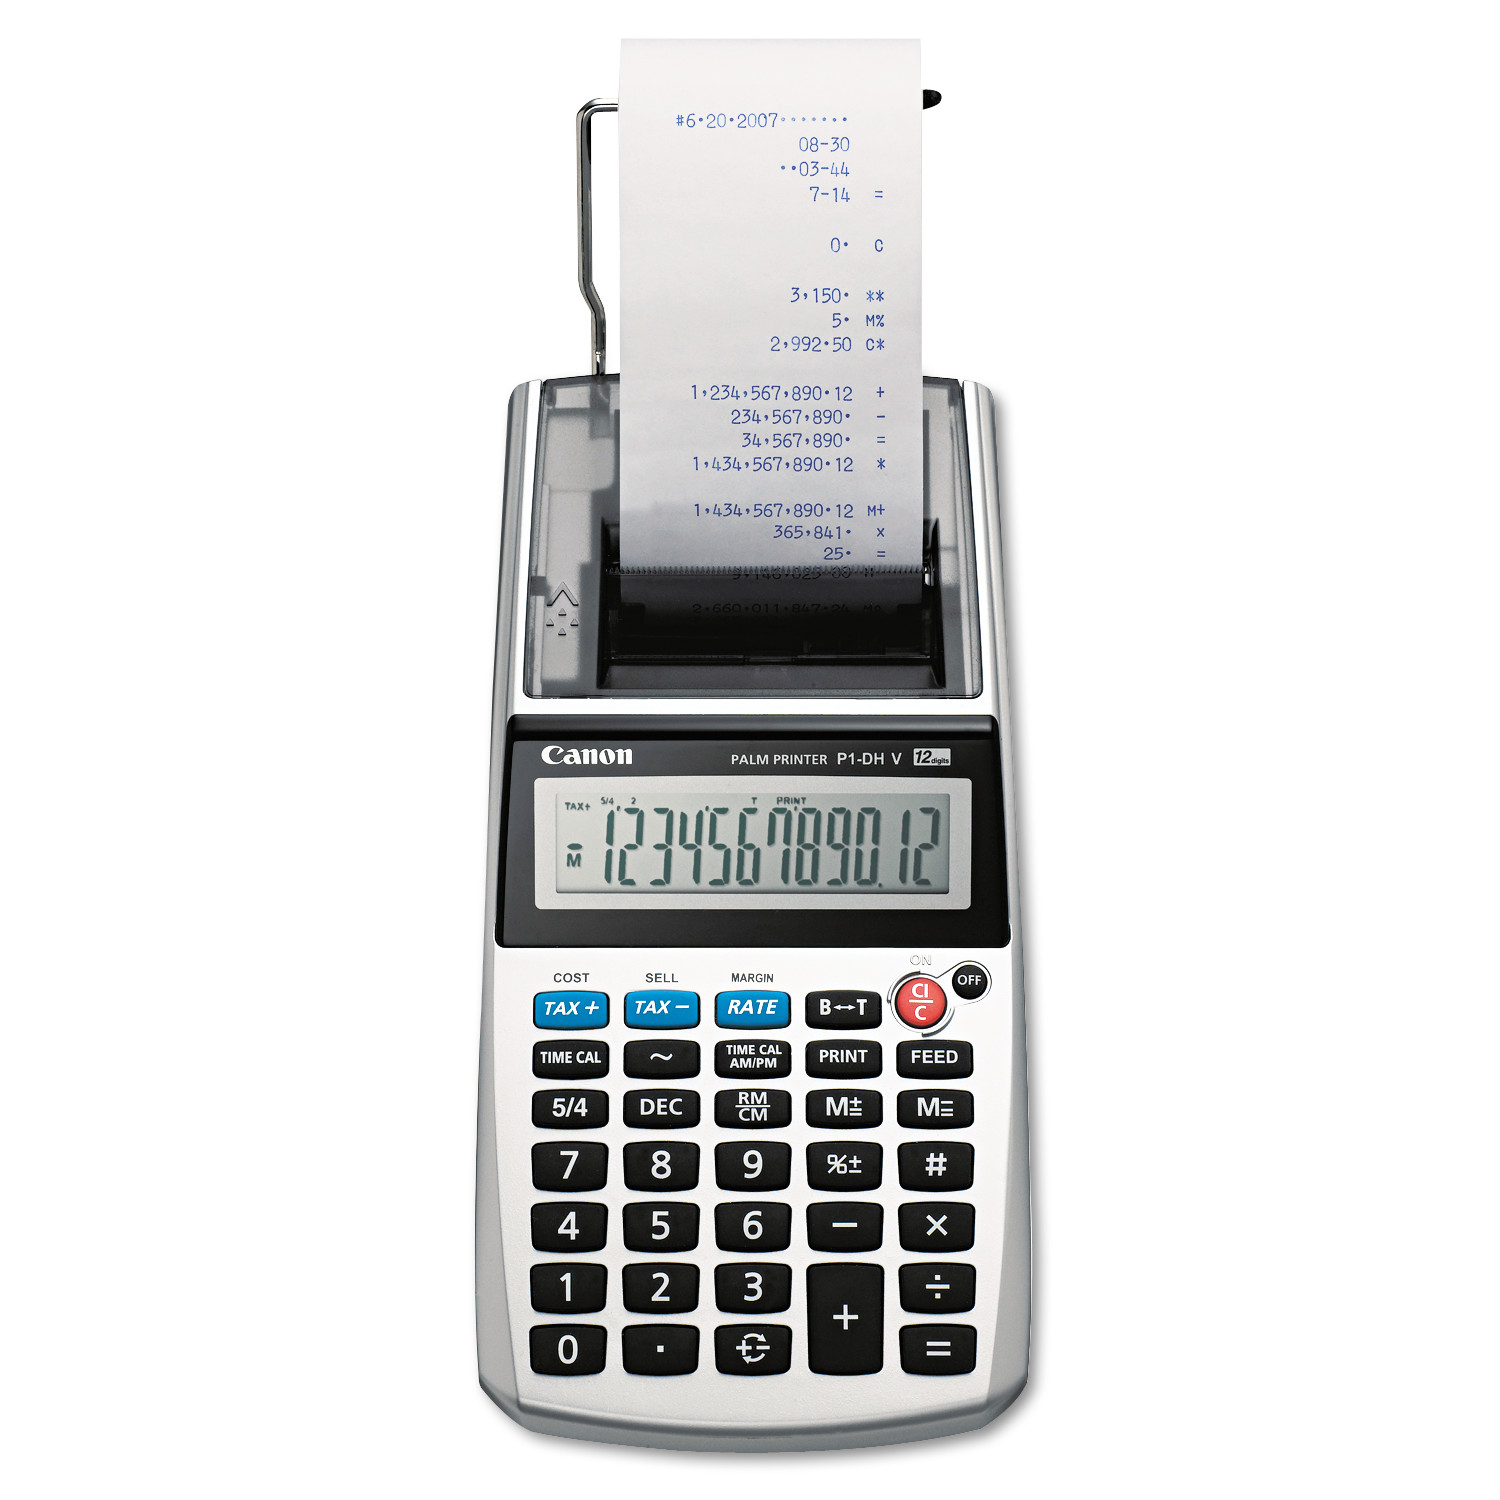 Canon P1-DHV 12-Digit Palm Printing Calculator, Purple Print, 2 Lines Sec by CANON USA, INC.